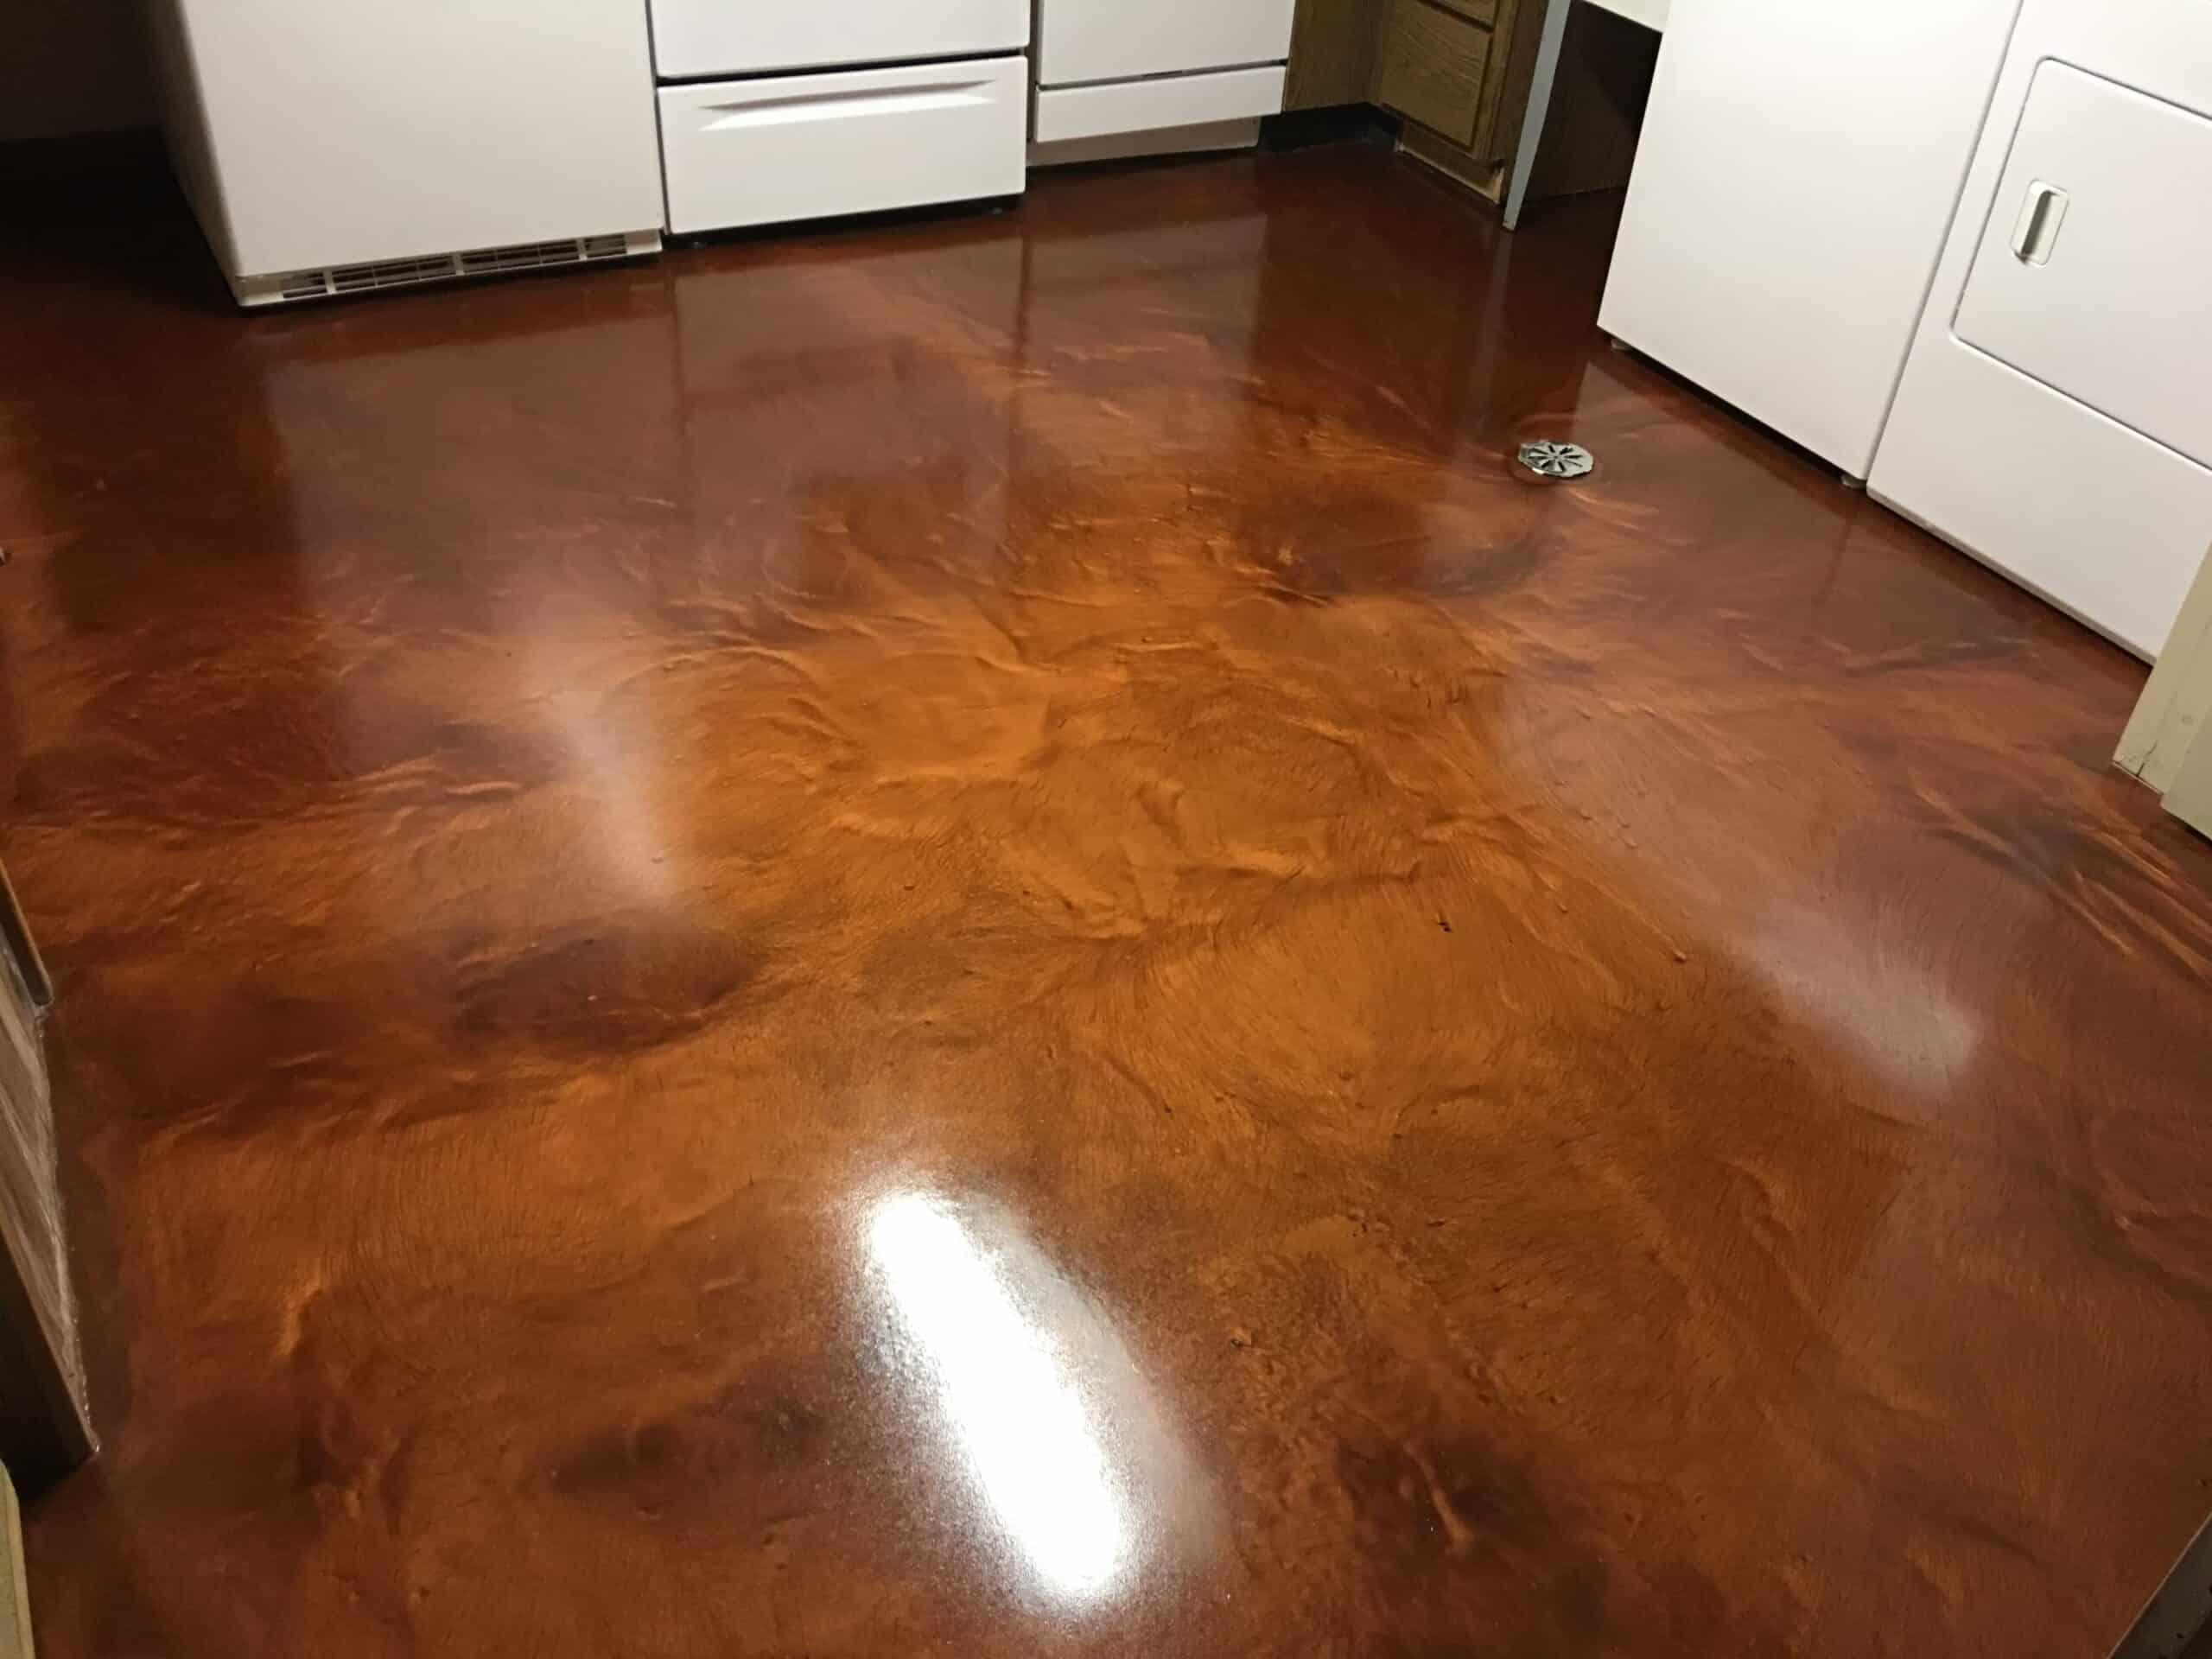 How much will an Epoxy Floor Coating cost in Commerce Township MI?